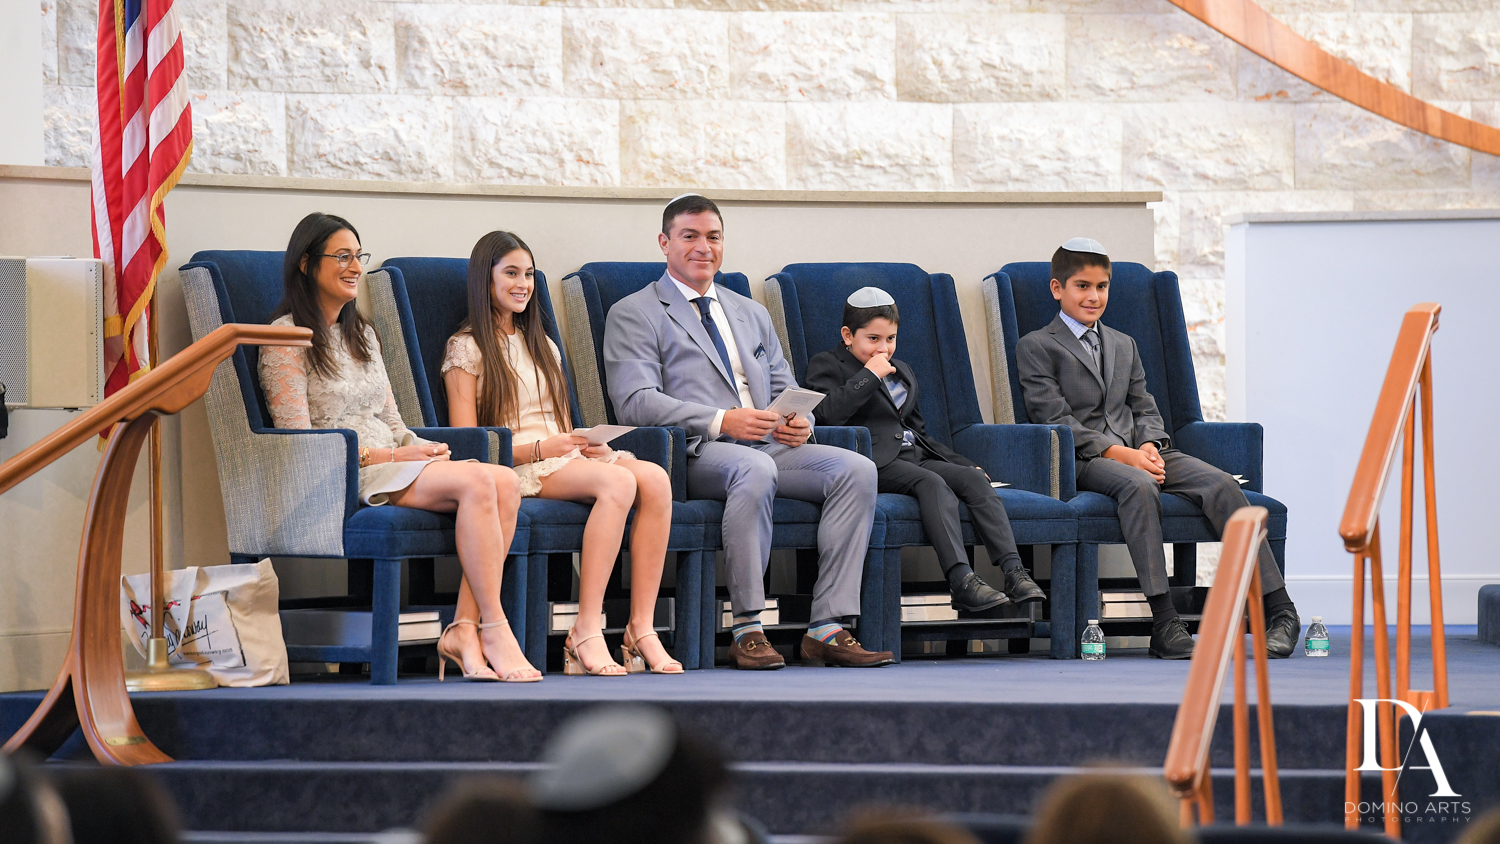 family at Traditional Jewish Bat Mitzvah at Temple Beth El by Domino Arts Photography